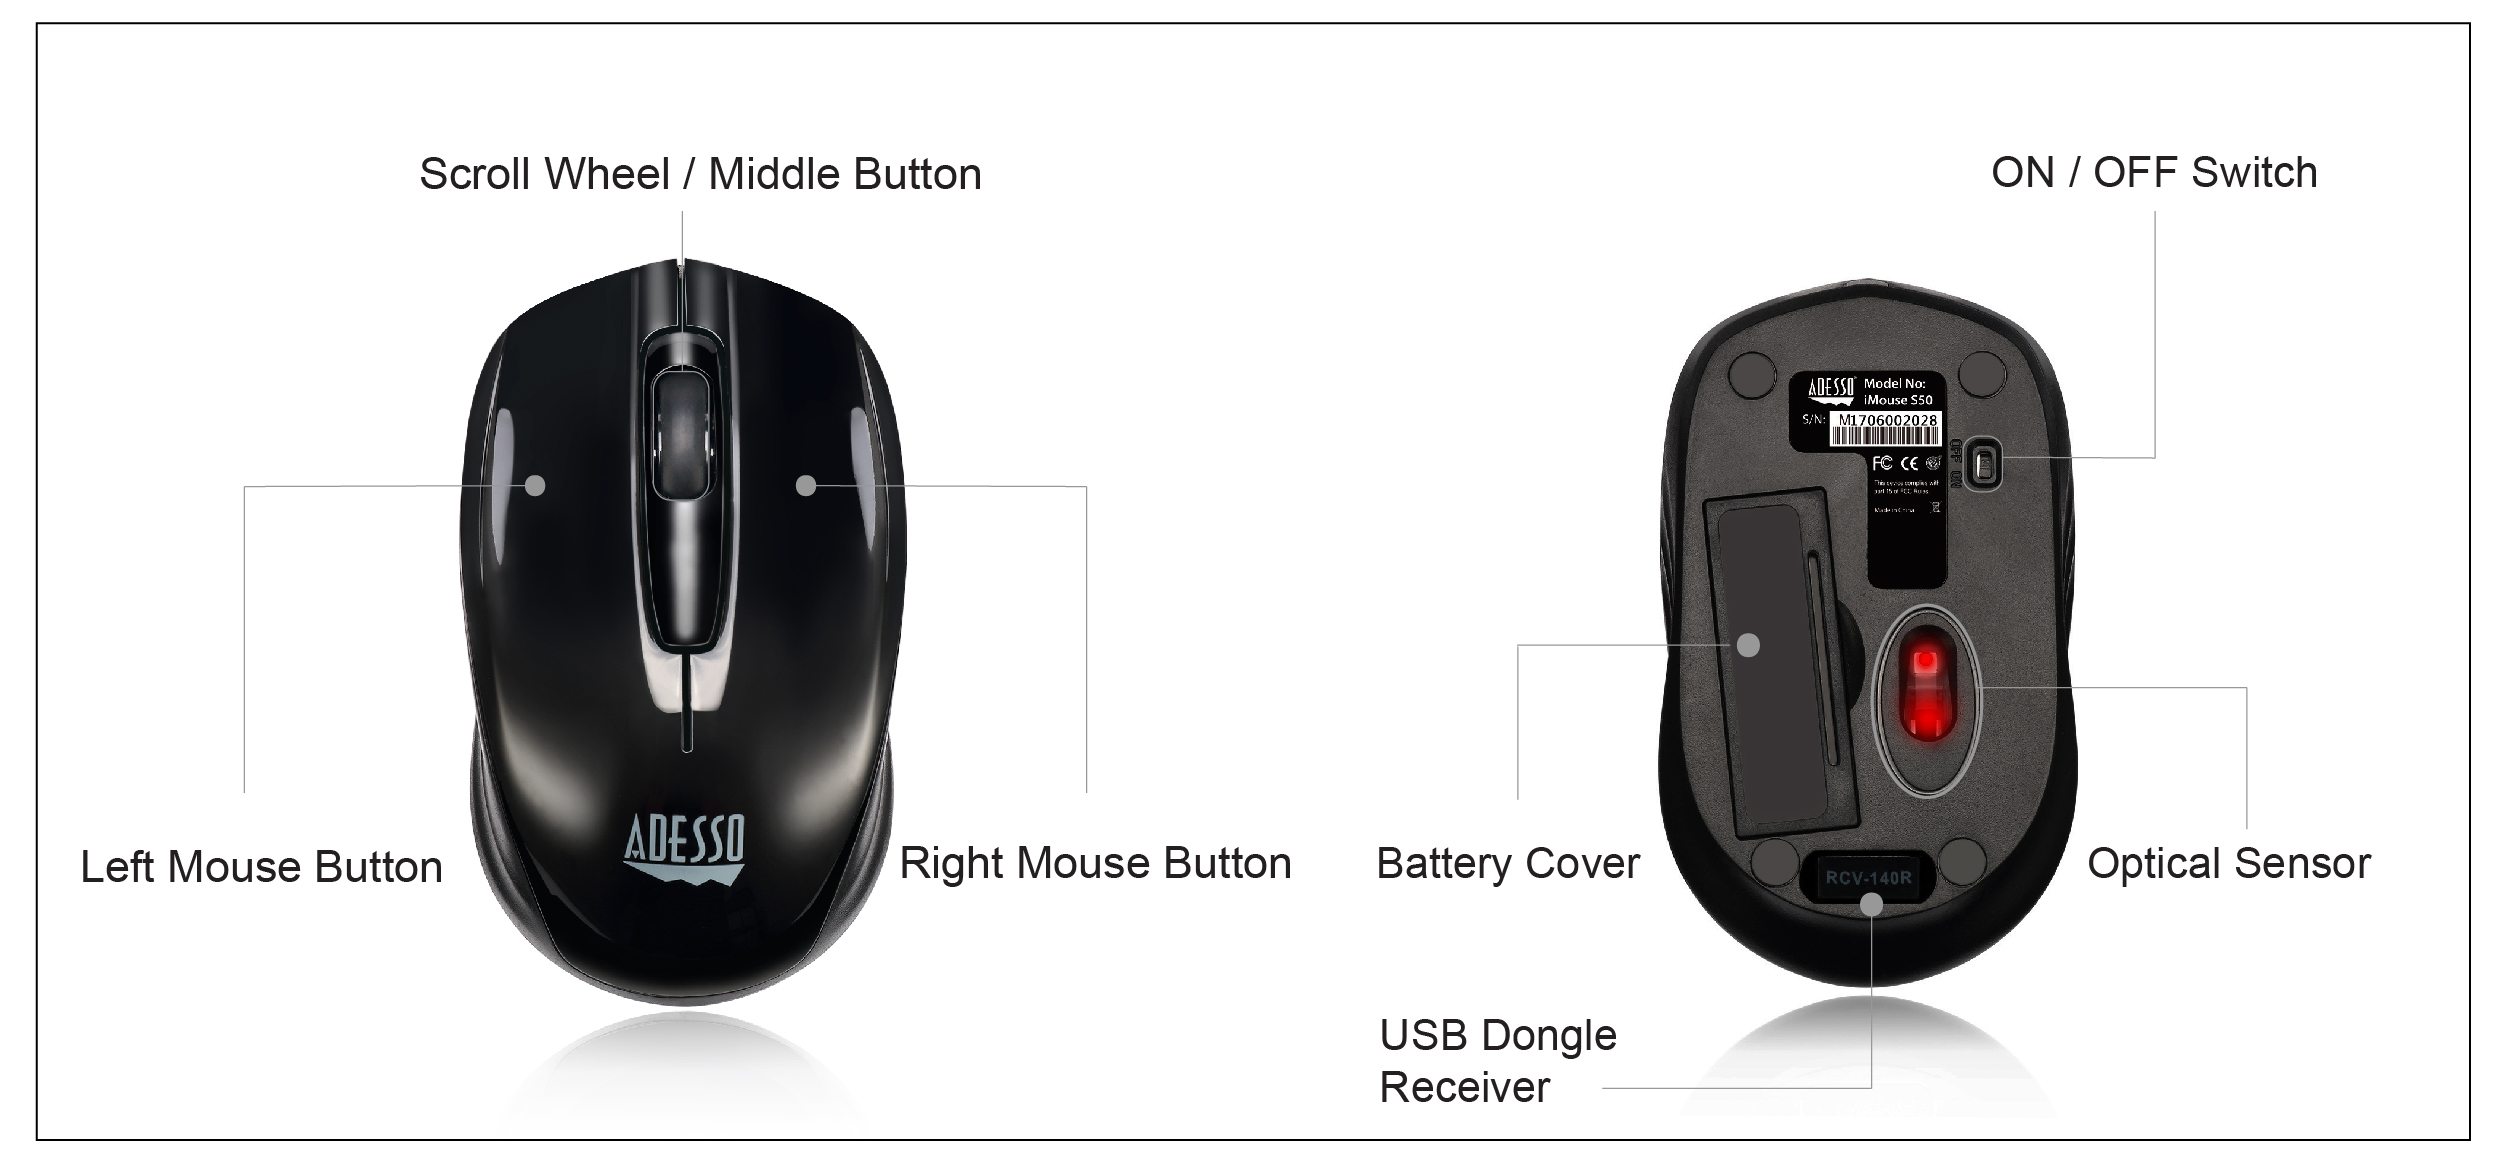 Imouse S50 24ghz Wireless Mini Mouse Adesso Inc Your Input Computer Diagram Part In This Advanced Offers You 30 Feet Of Freedom And Eliminates The Constraints Wired Mice Often